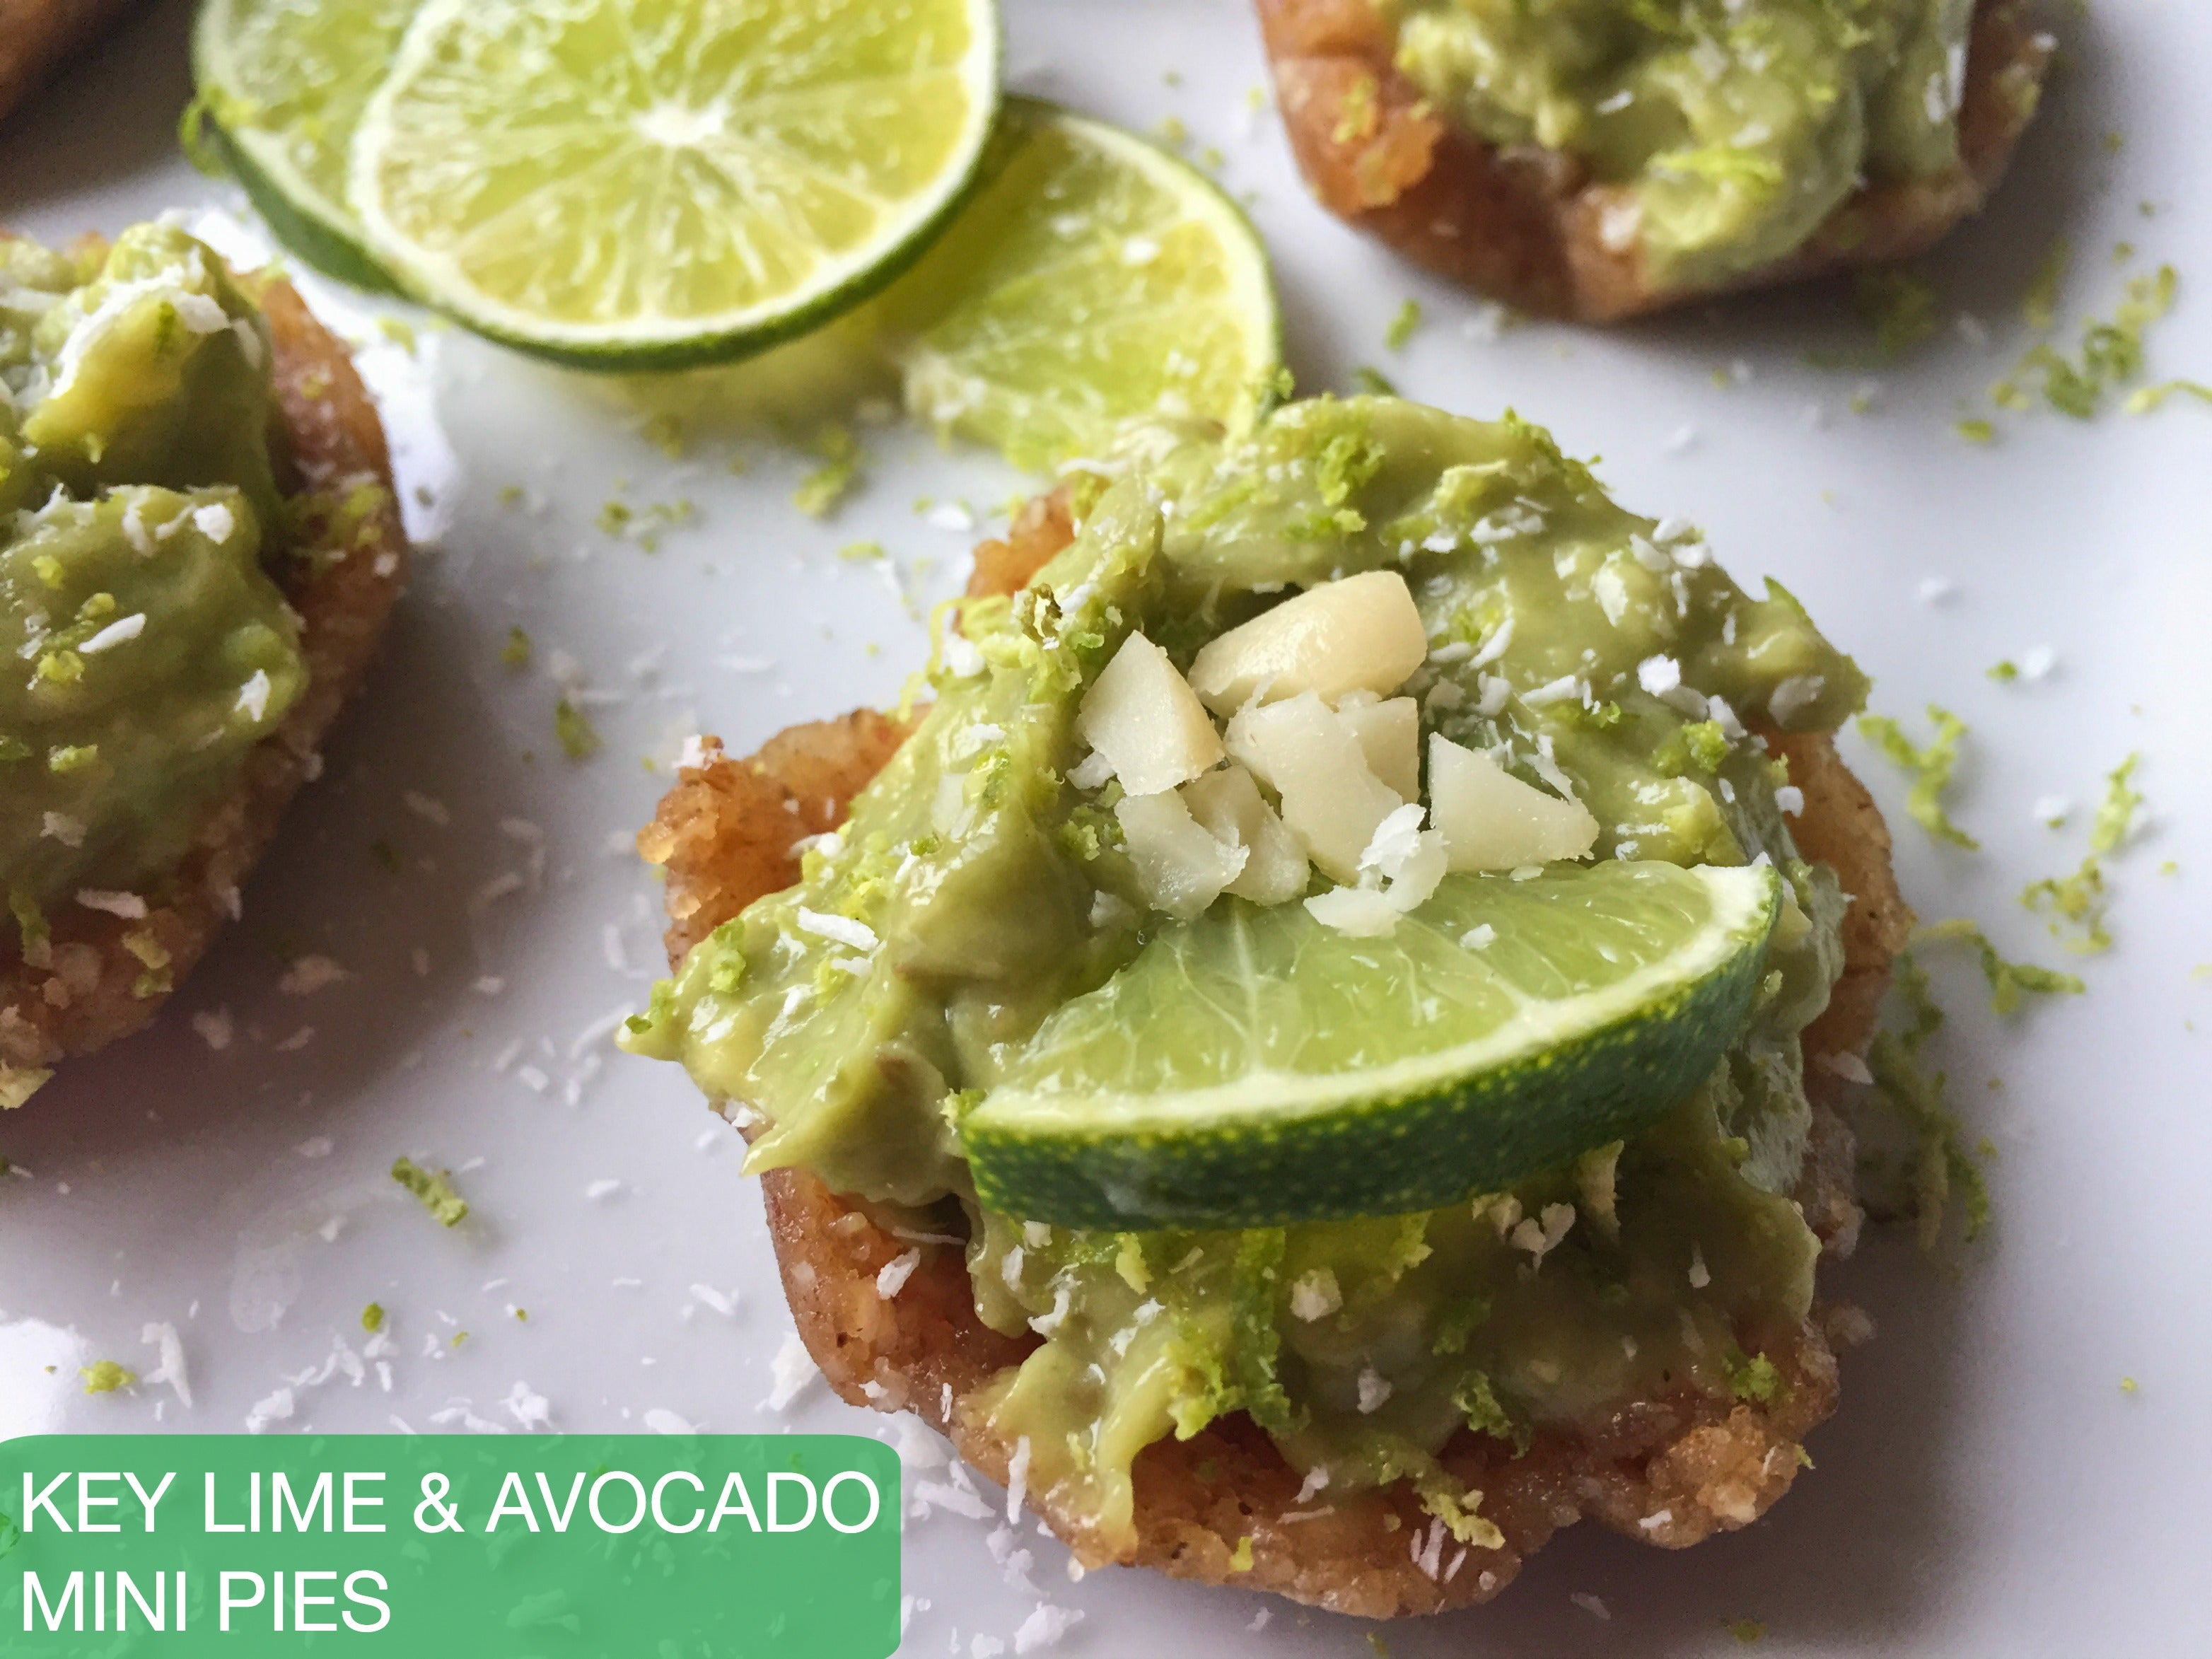 Key Lime & Avocado Mini Pies